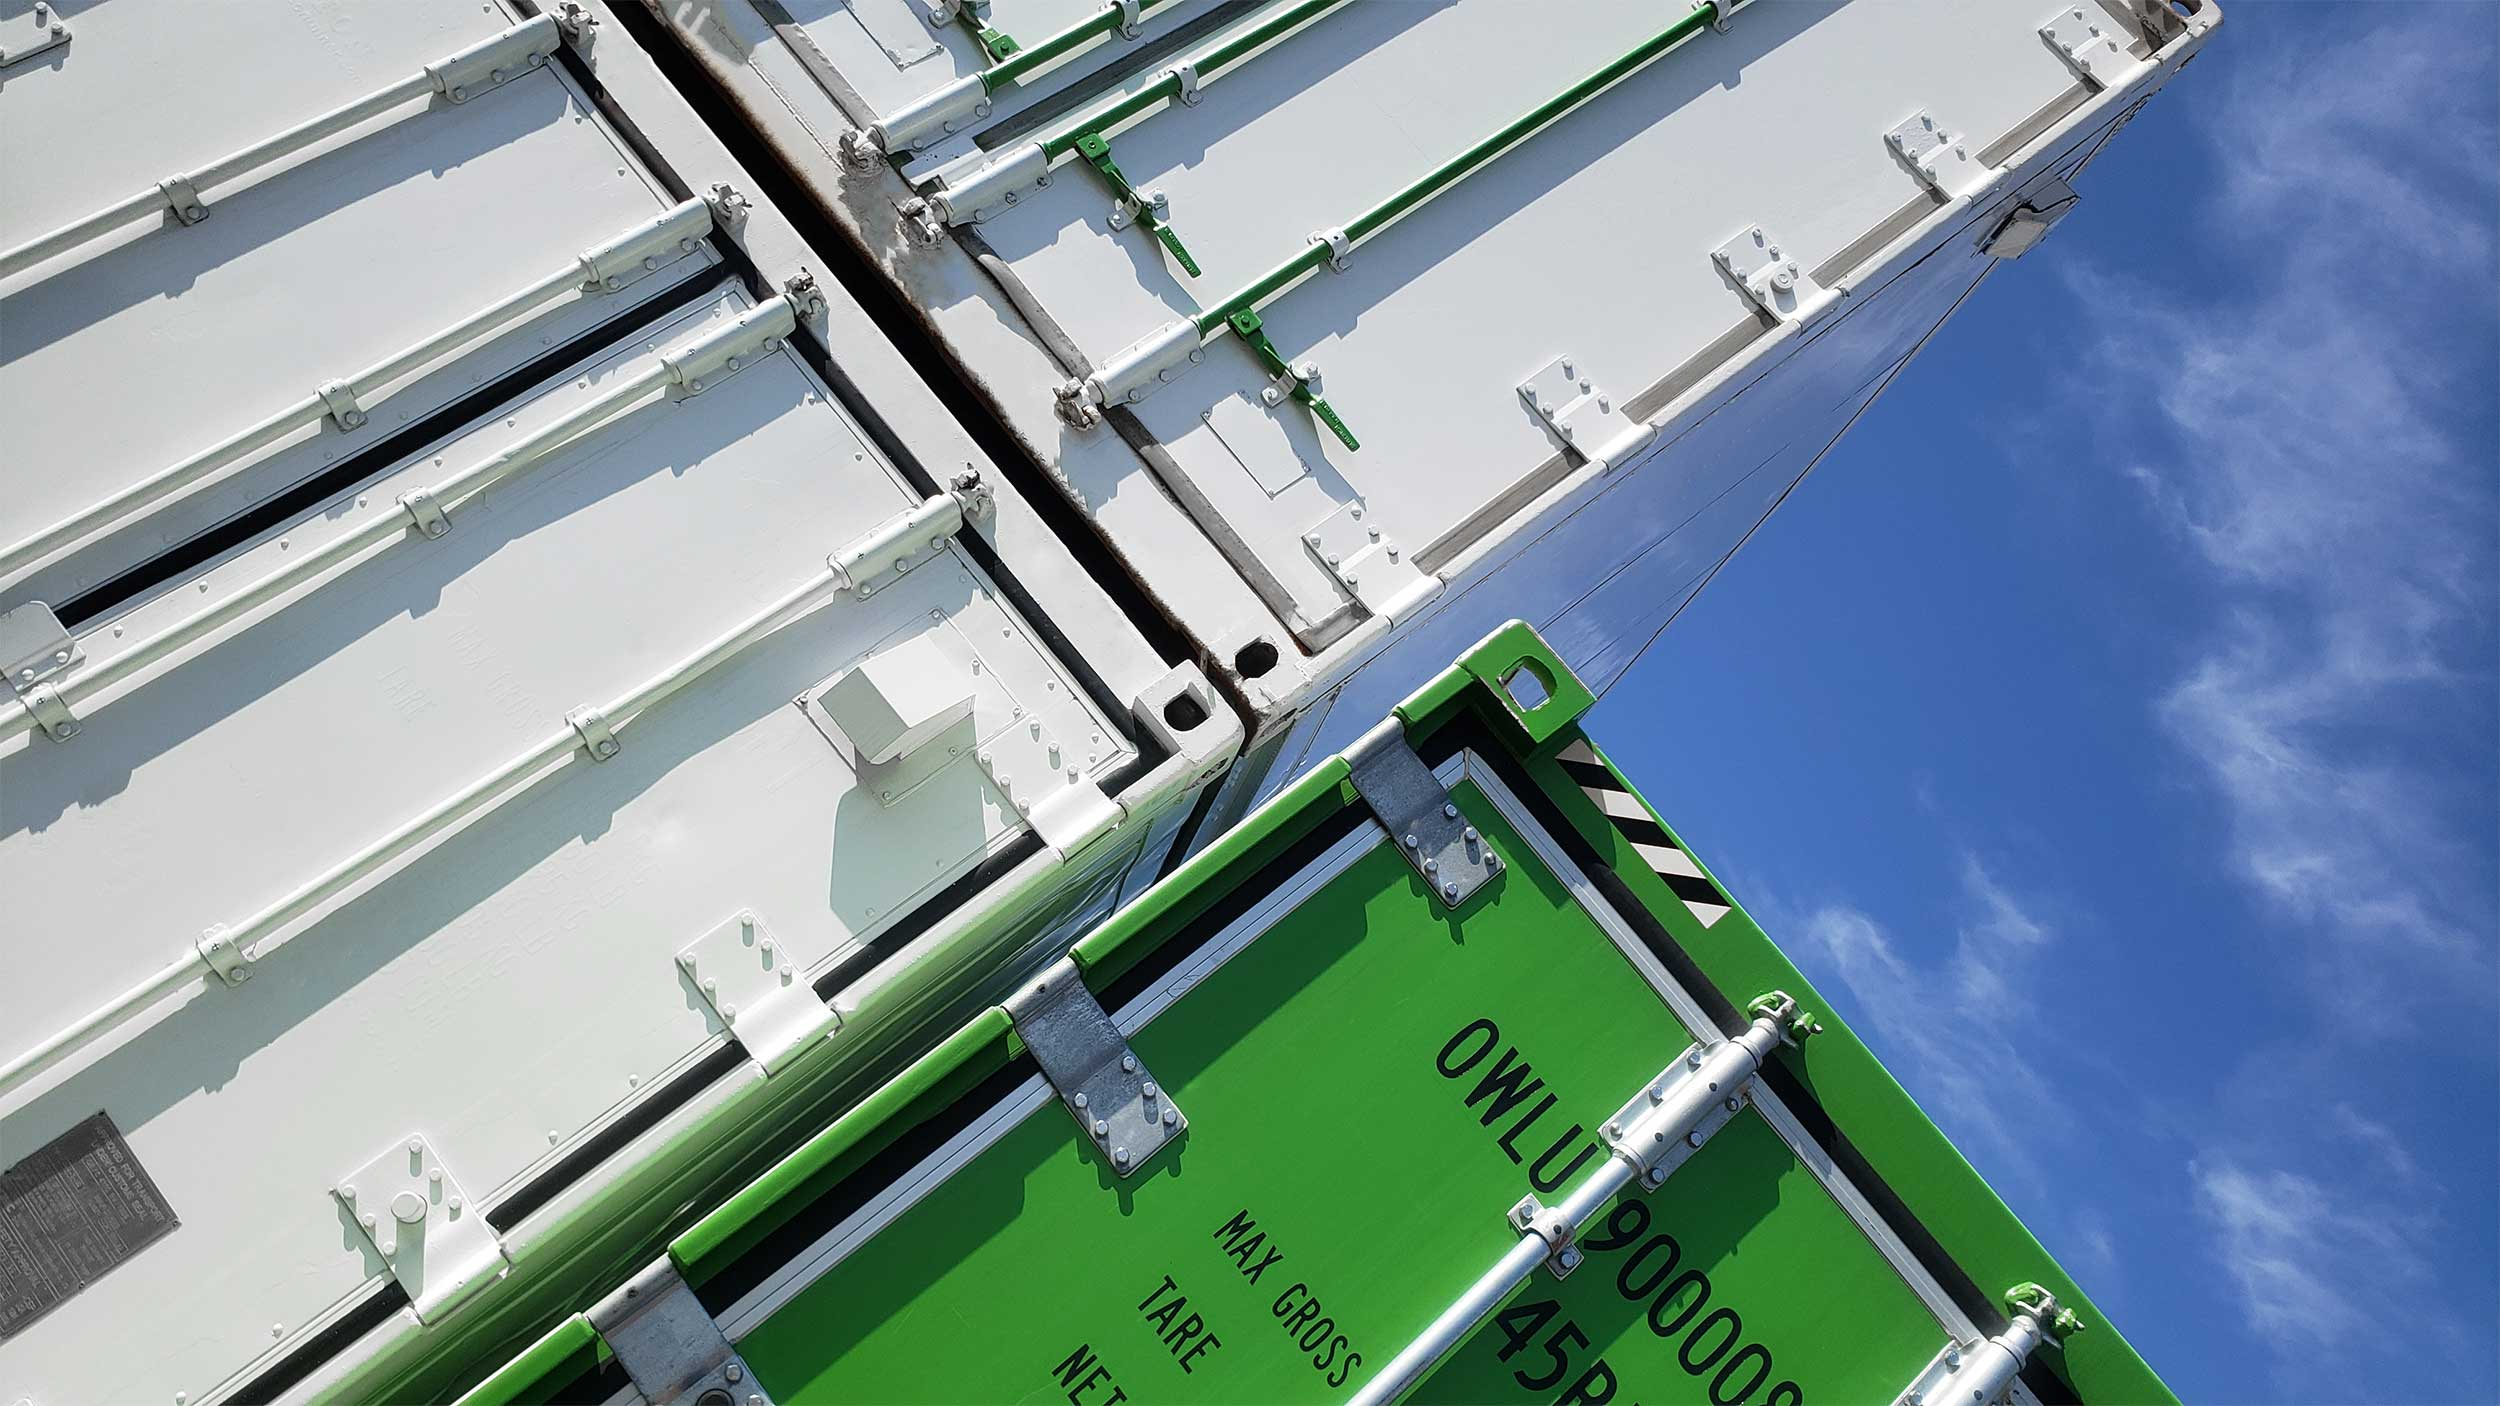 Freight-Farms-Hydroponic-Container-Farm-2.jpg